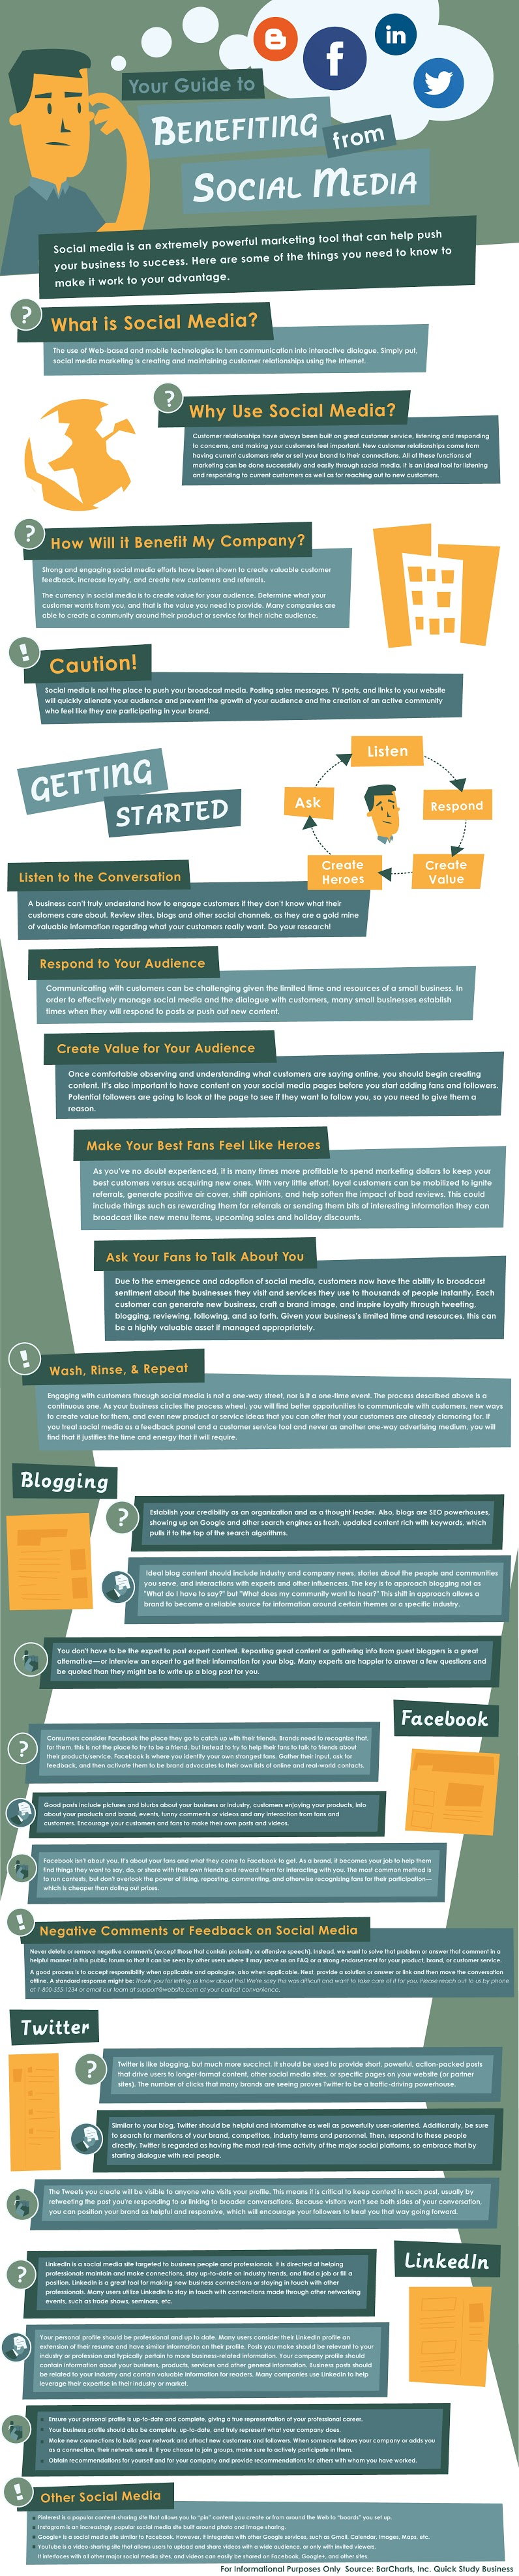 How to Get Your Business Started on Social Media marketing (Infographic)